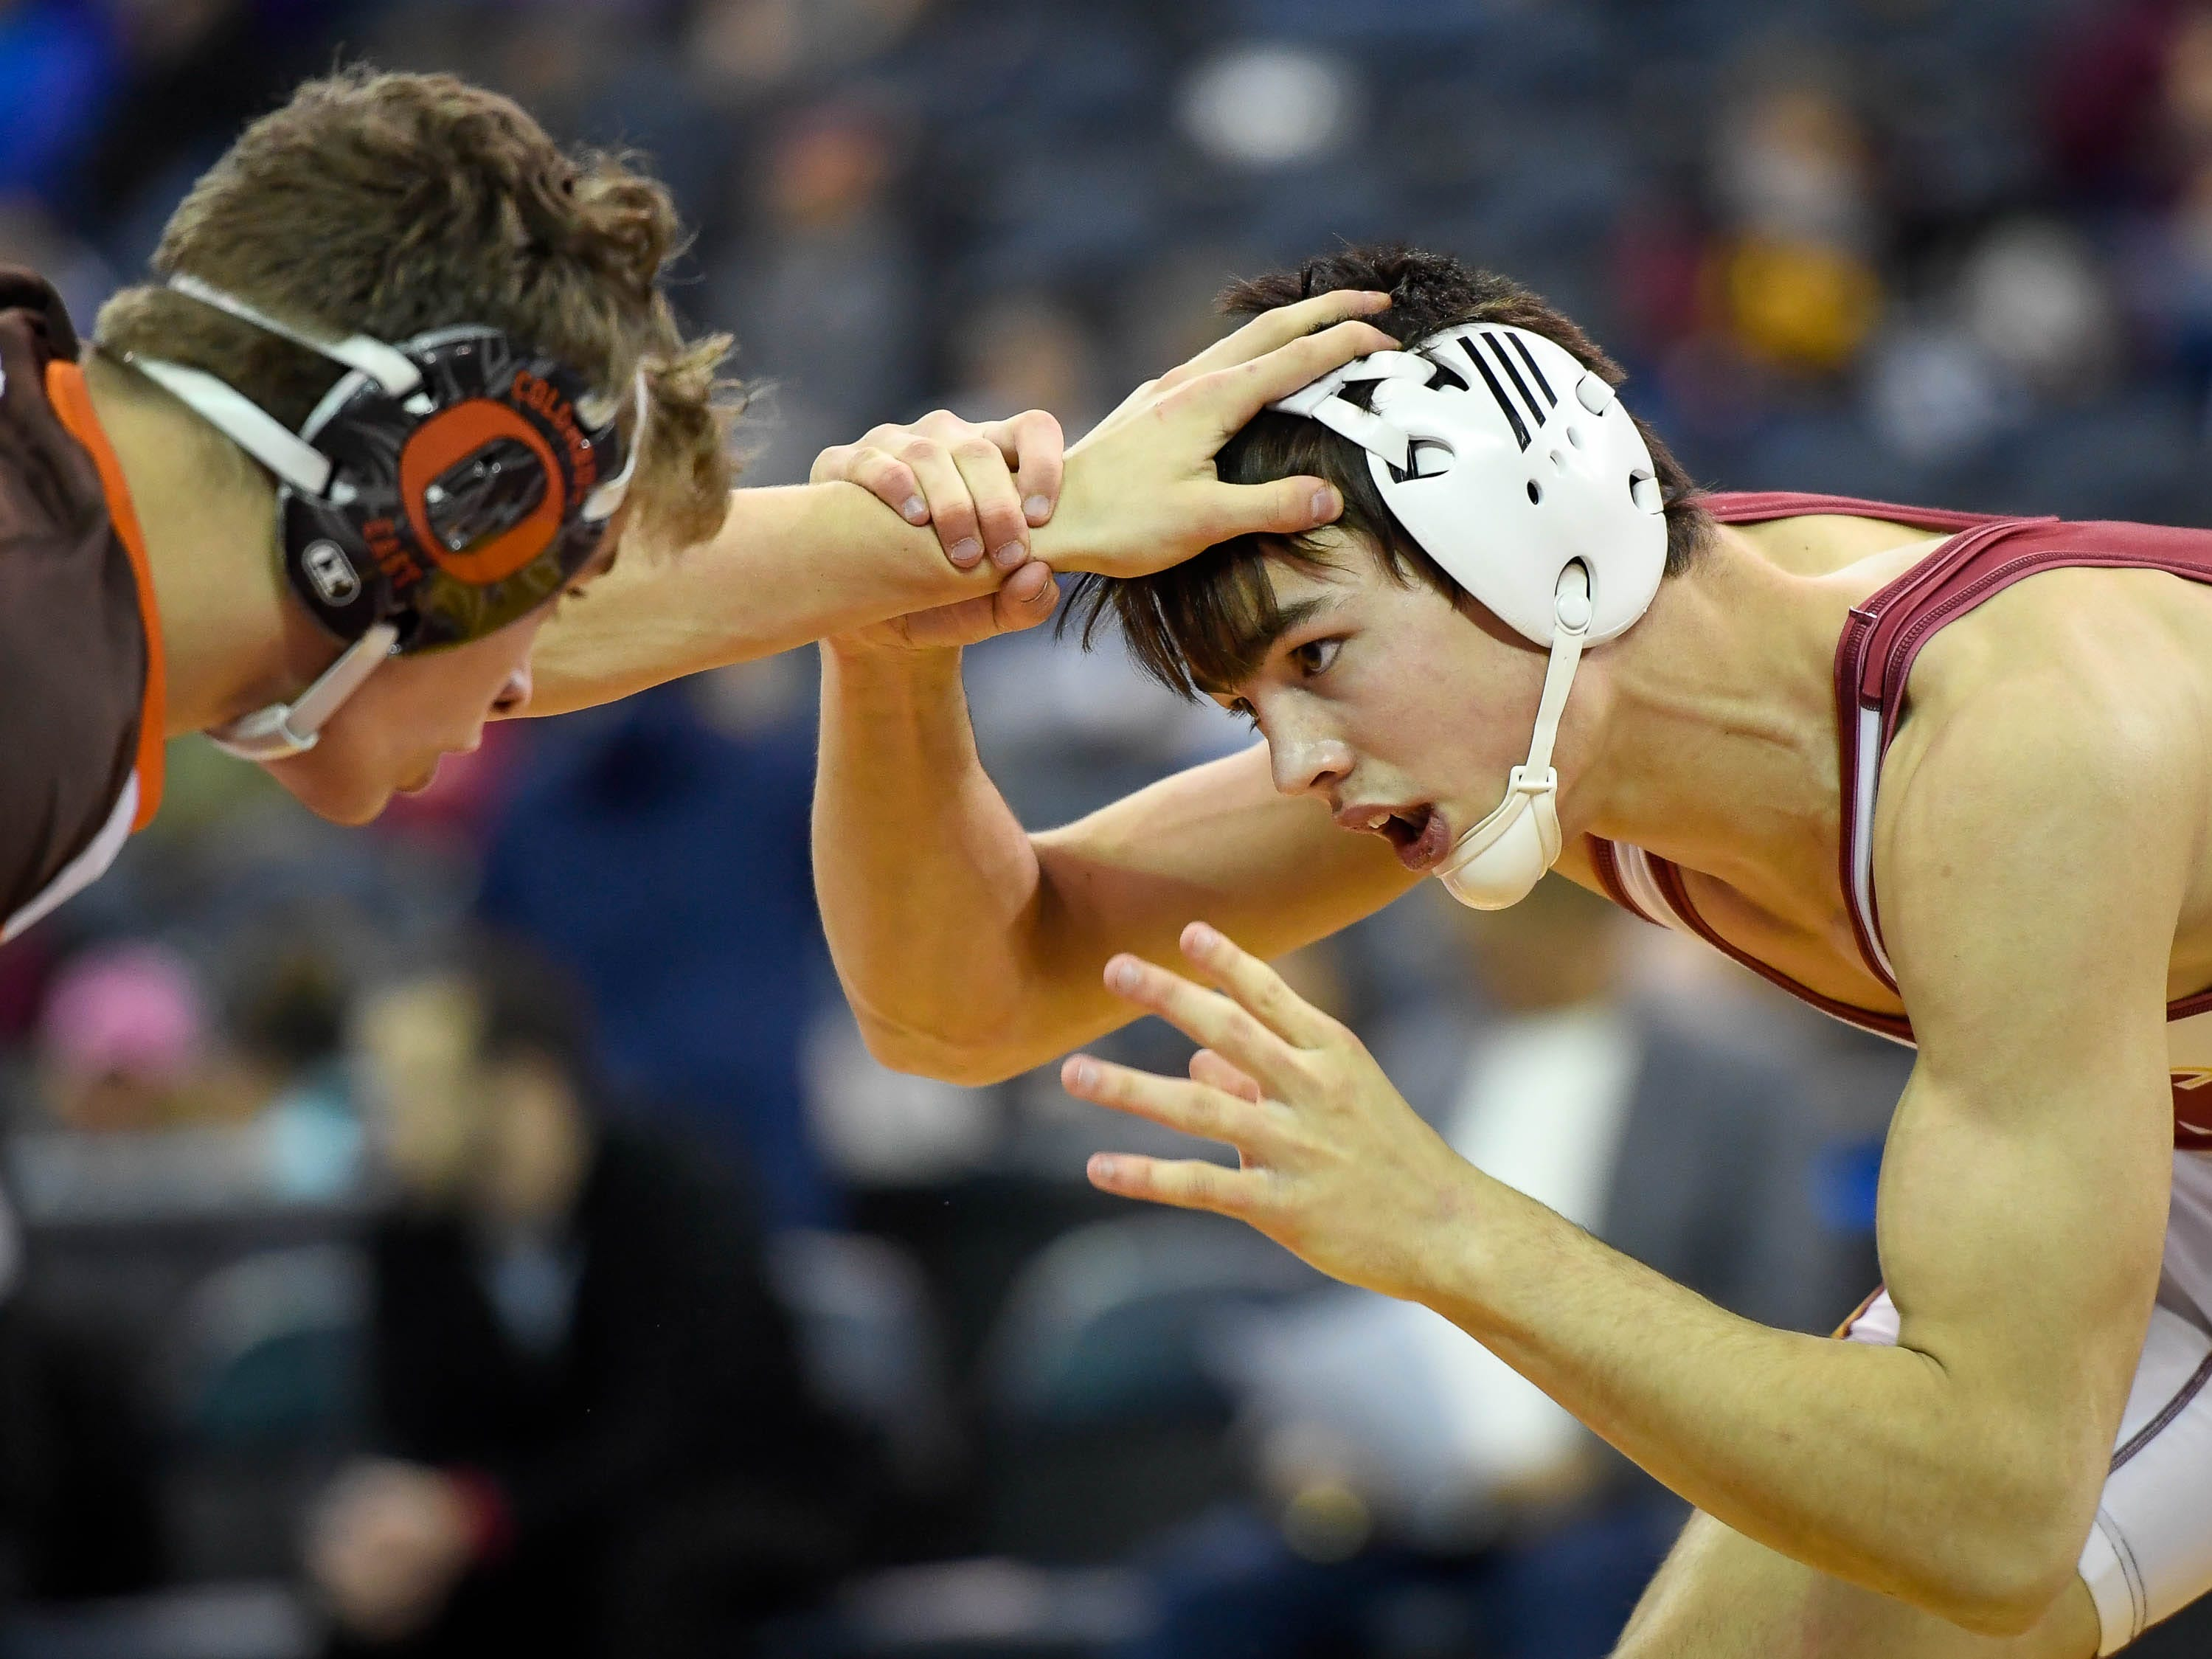 Mater Dei's Eli Dickens wrestles Jake Schoenegge, Columbus East in the 152 pound class at the finals of the Indiana High School Athletic Association Semi-State Wrestling Tournament held at the Ford Center Saturday, February 9, 2019.